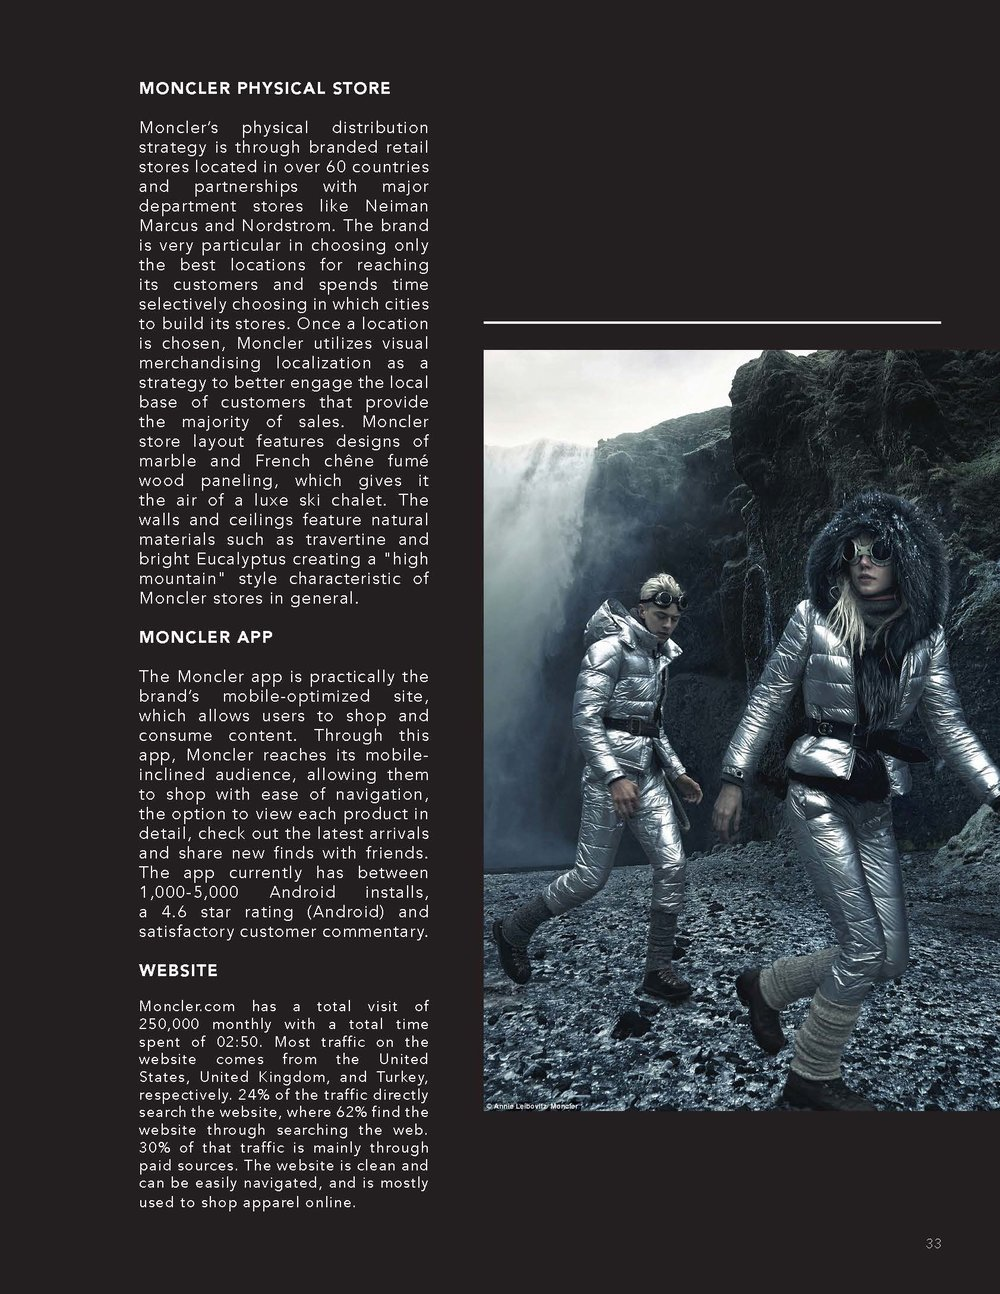 moncler annual report